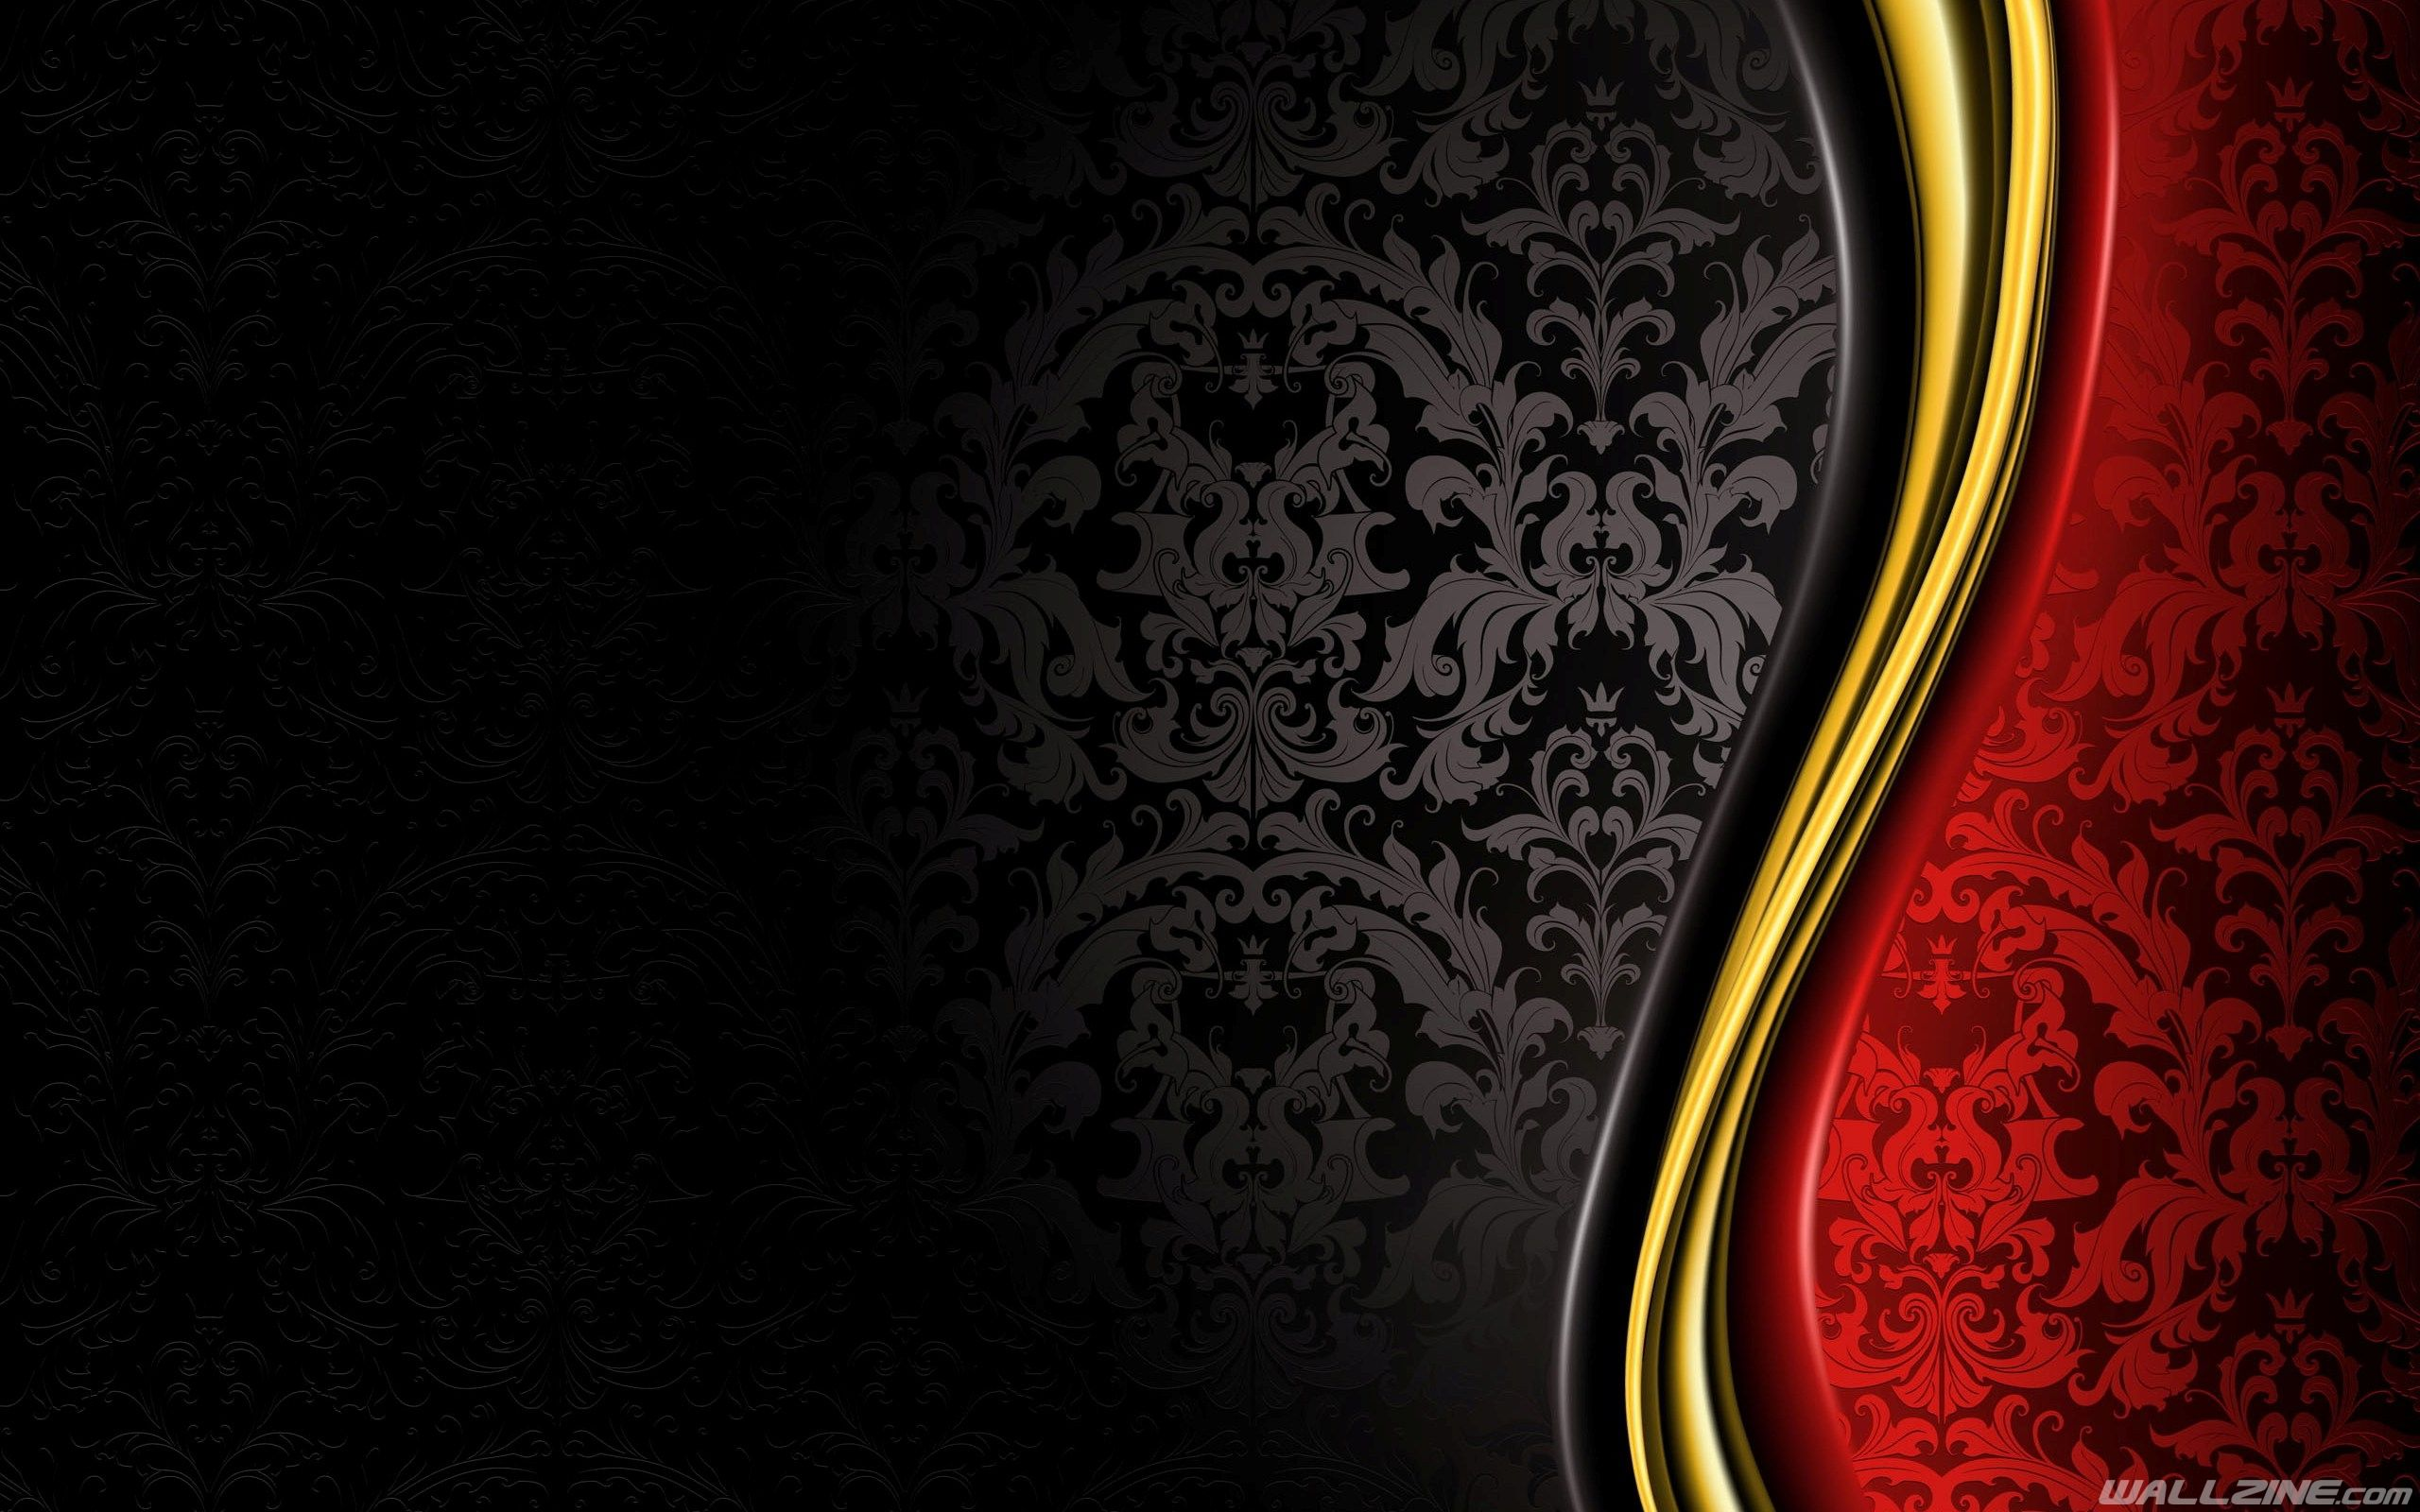 Luxury Desktop Background Vintage Red And Gold Wallpaper Background Images Wallpapers